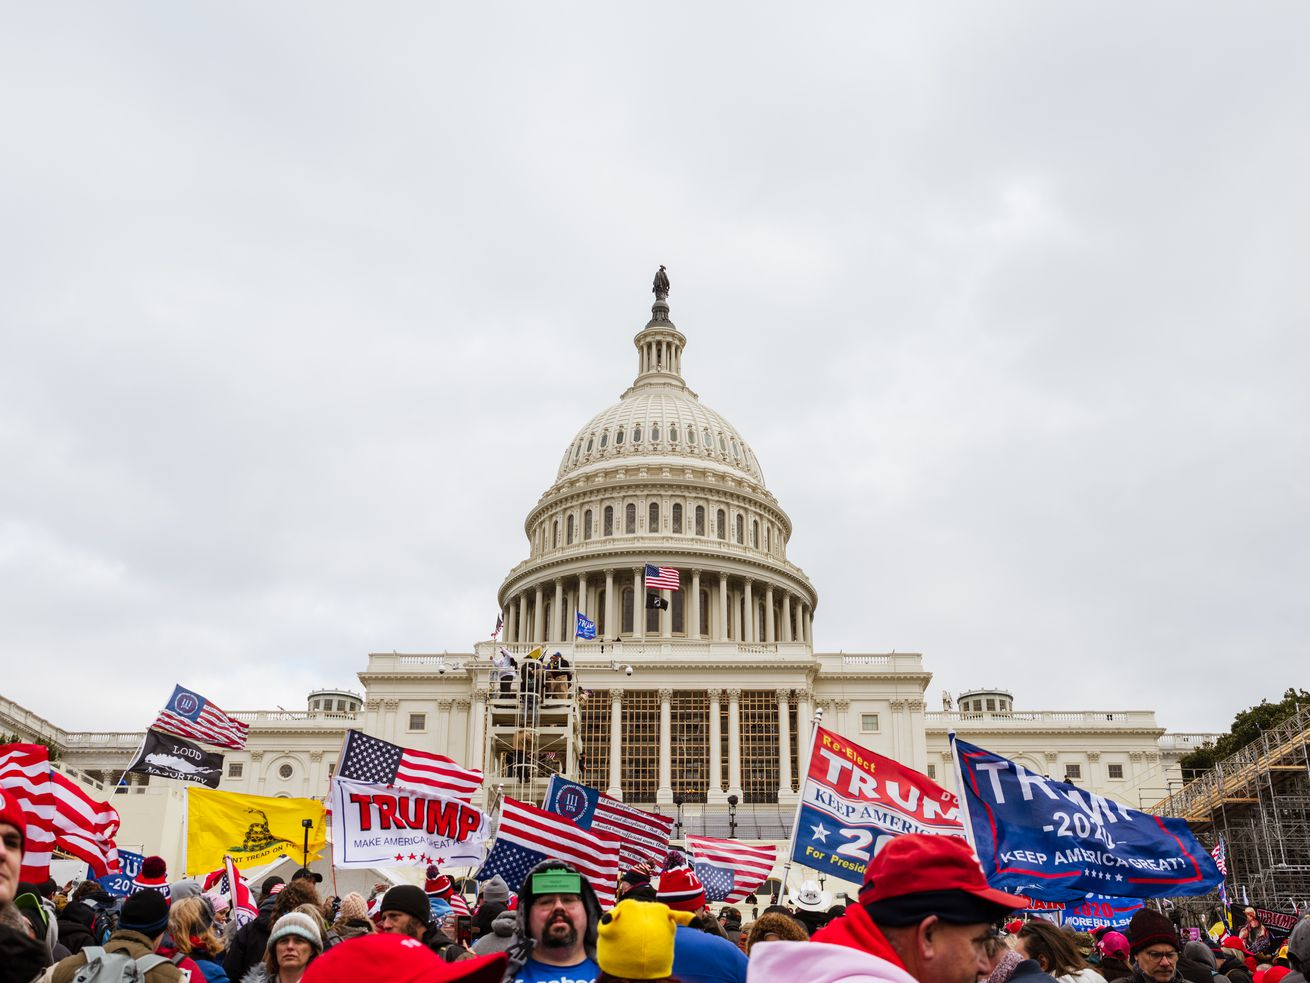 WASHINGTON, DC - JANUARY 06: A large group of pro-Trump protesters raise signs and flags on the grounds of the Capitol Building on January 6, 2021 in Washington, DC. A pro-Trump mob stormed the Capitol earlier, breaking windows and clashing with police officers. Trump supporters gathered in the nation's capital today to protest the ratification of President-elect Joe Biden's Electoral College victory over President Trump in the 2020 election. (Photo by Jon Cherry/Getty Images) ORG XMIT: 775604807